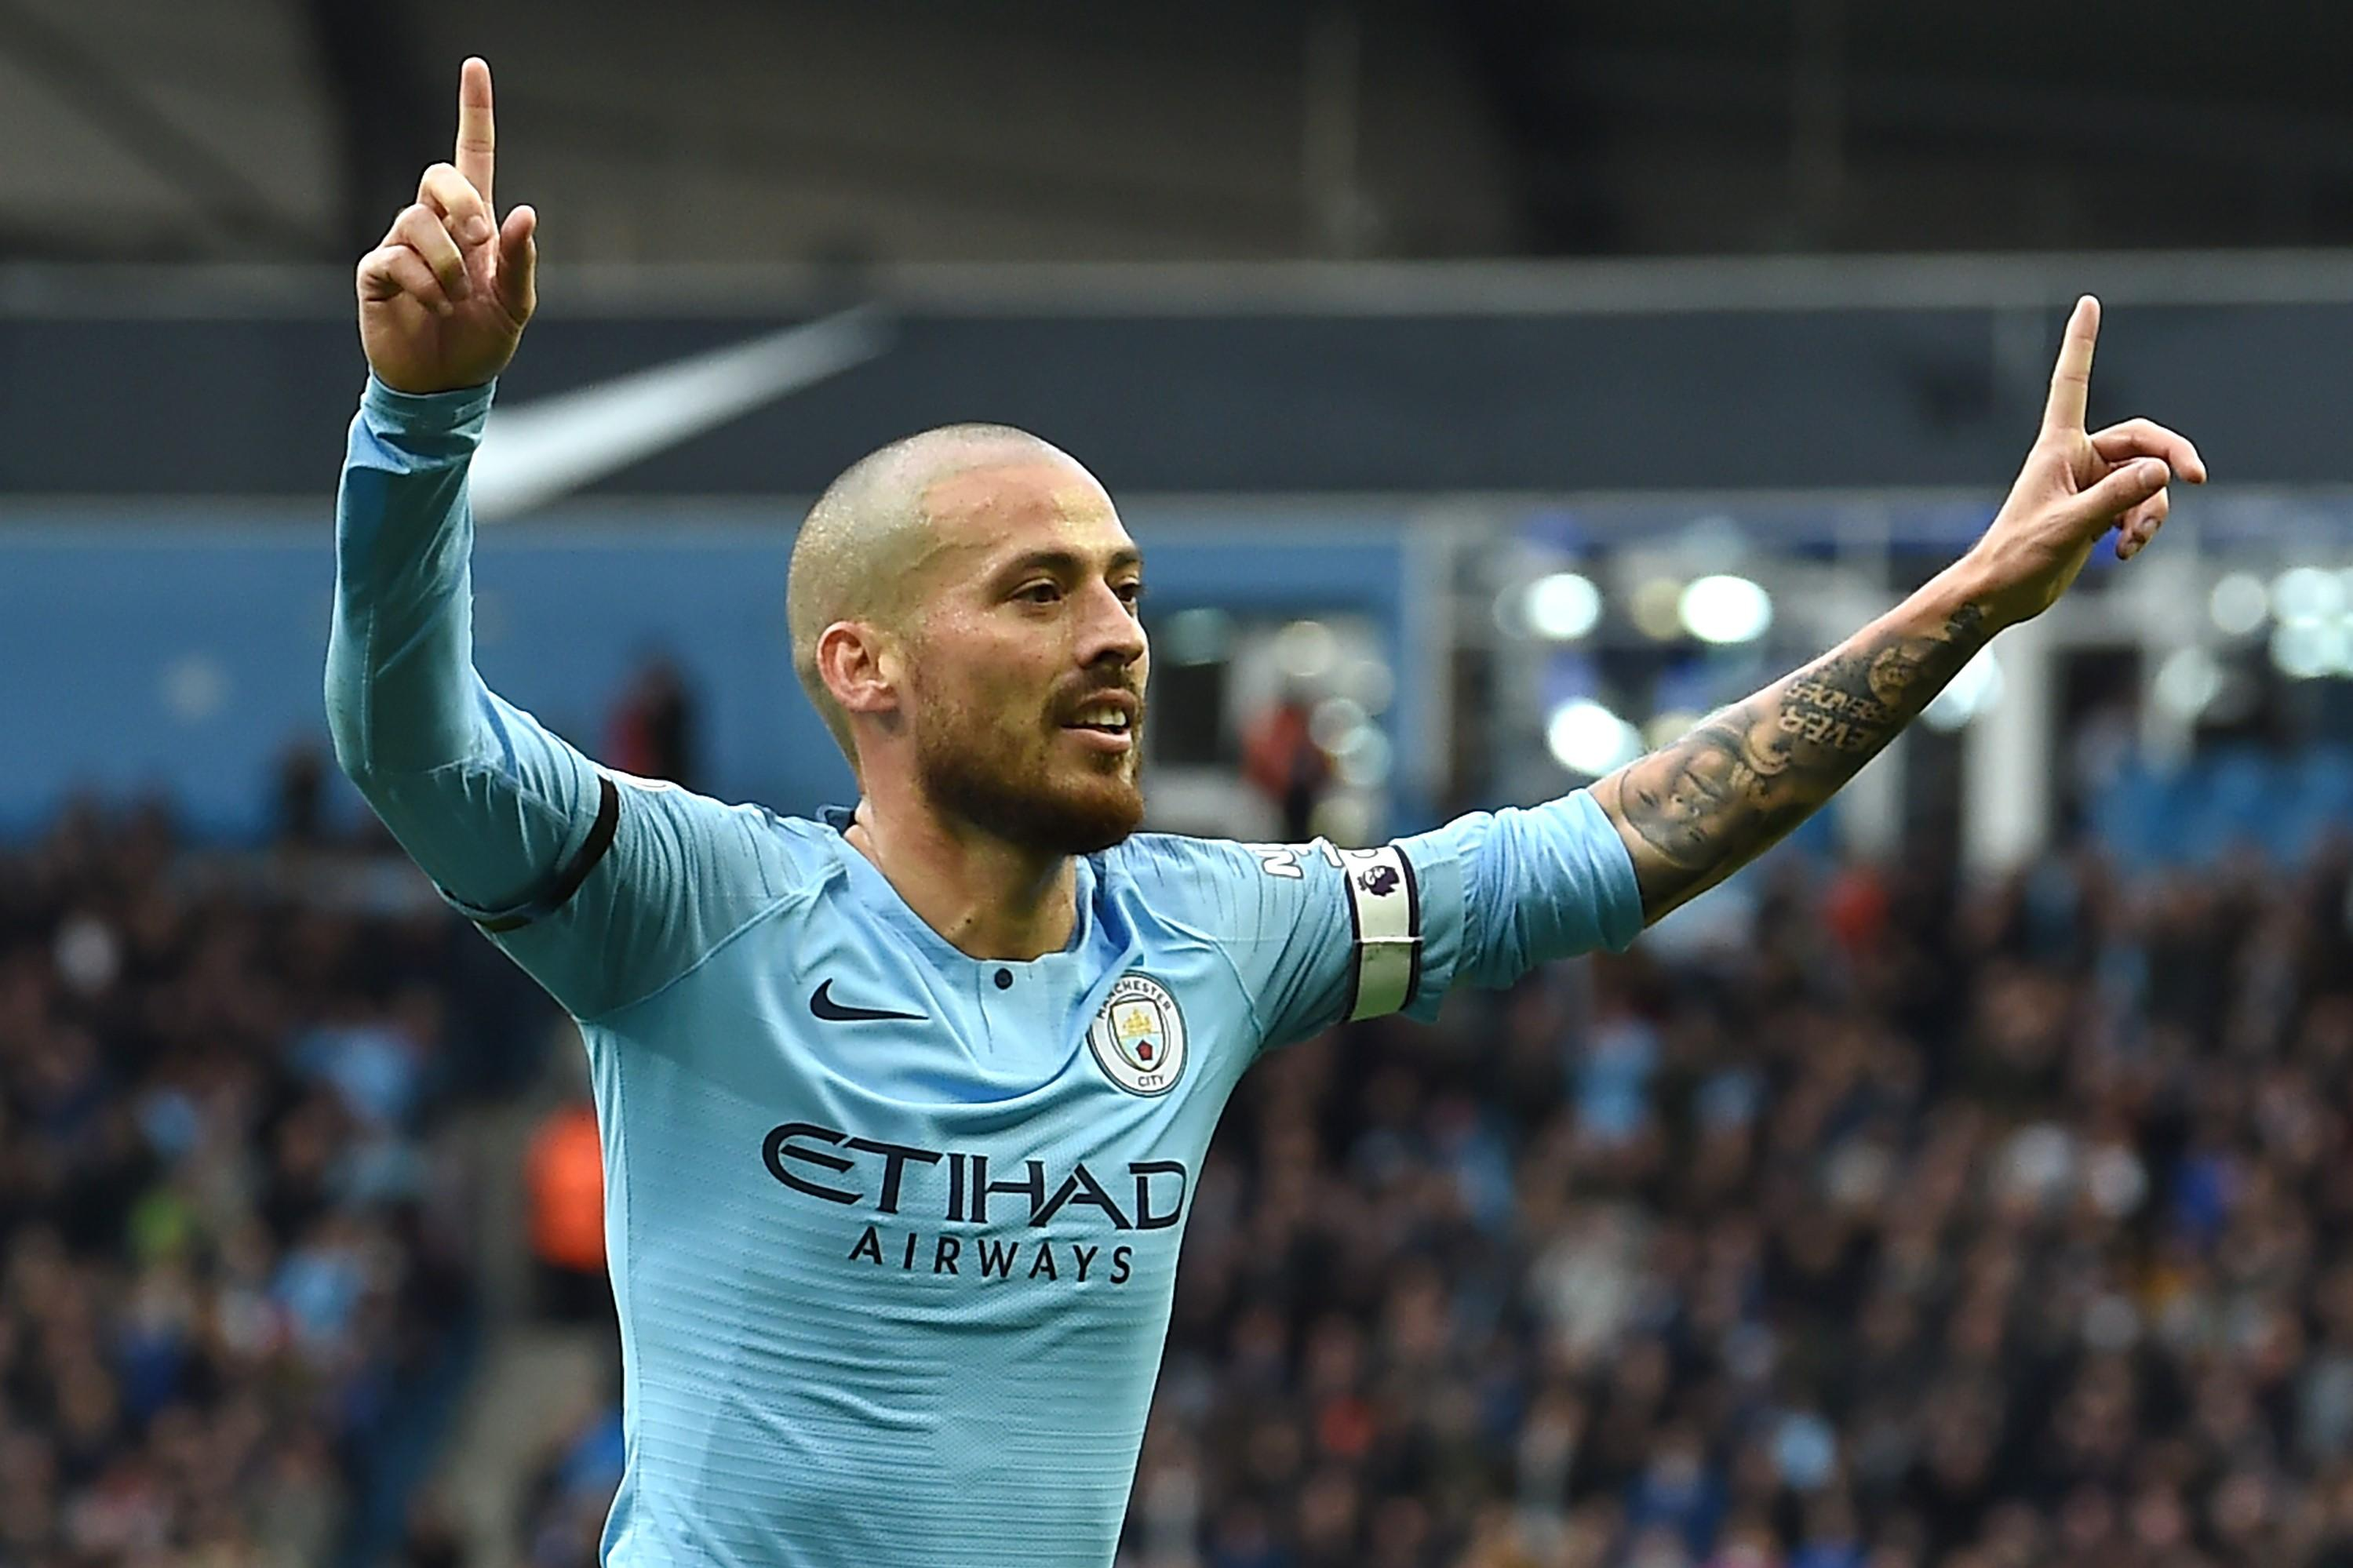 Silva Stepping Up In Absence Of De Bruyne